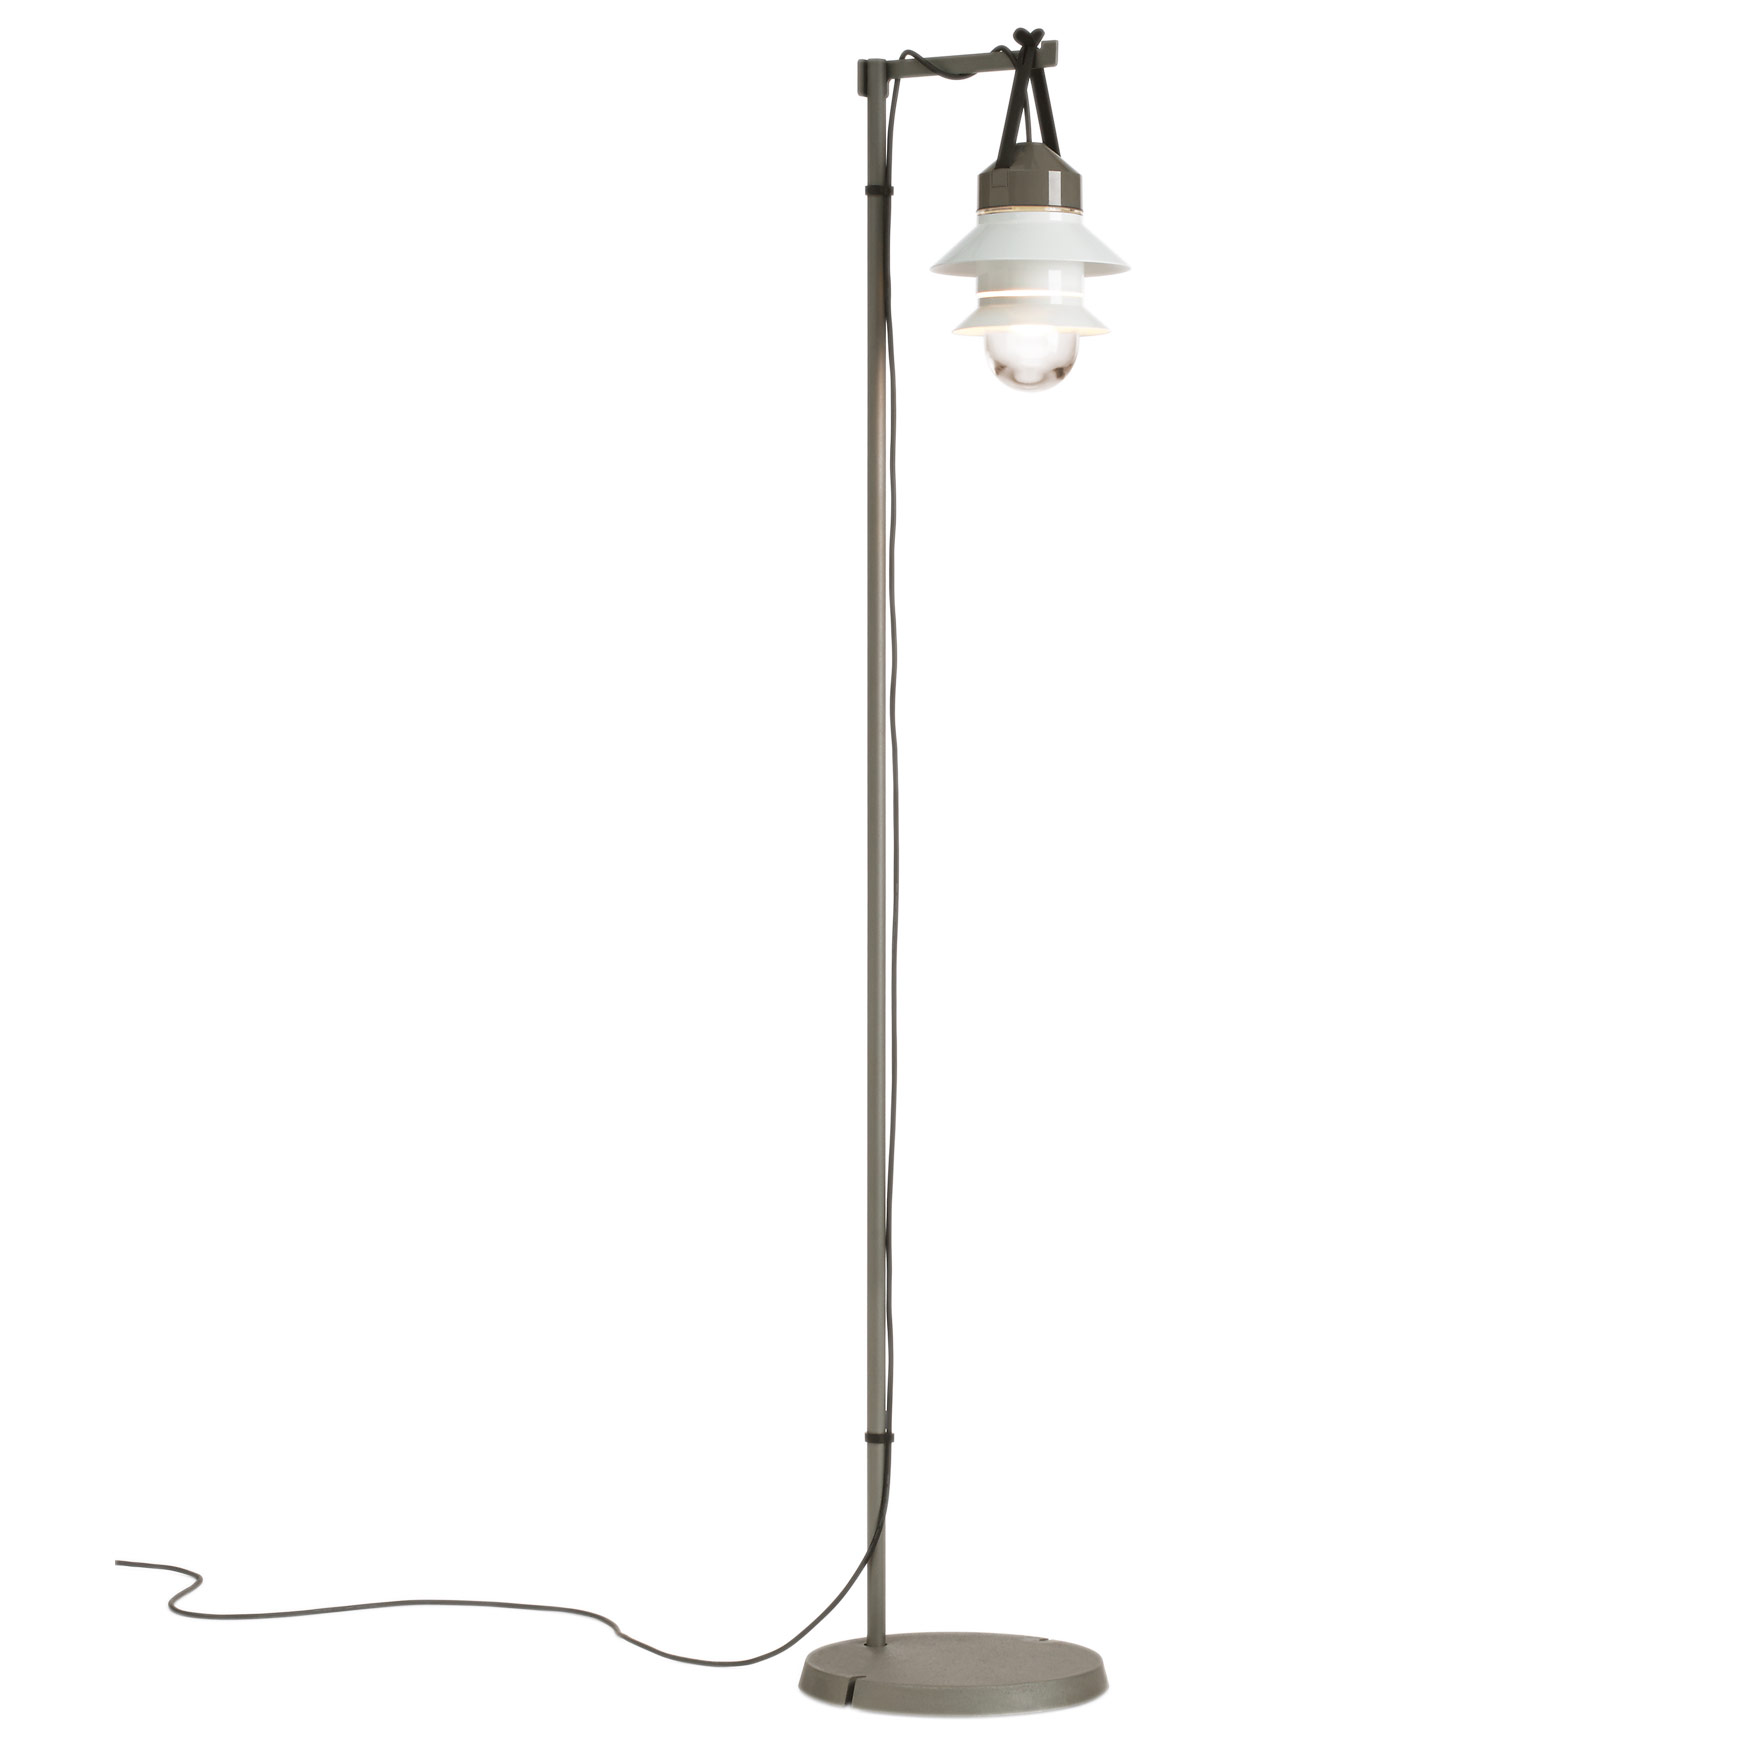 Floor Lamp By Mt Lc A654 009